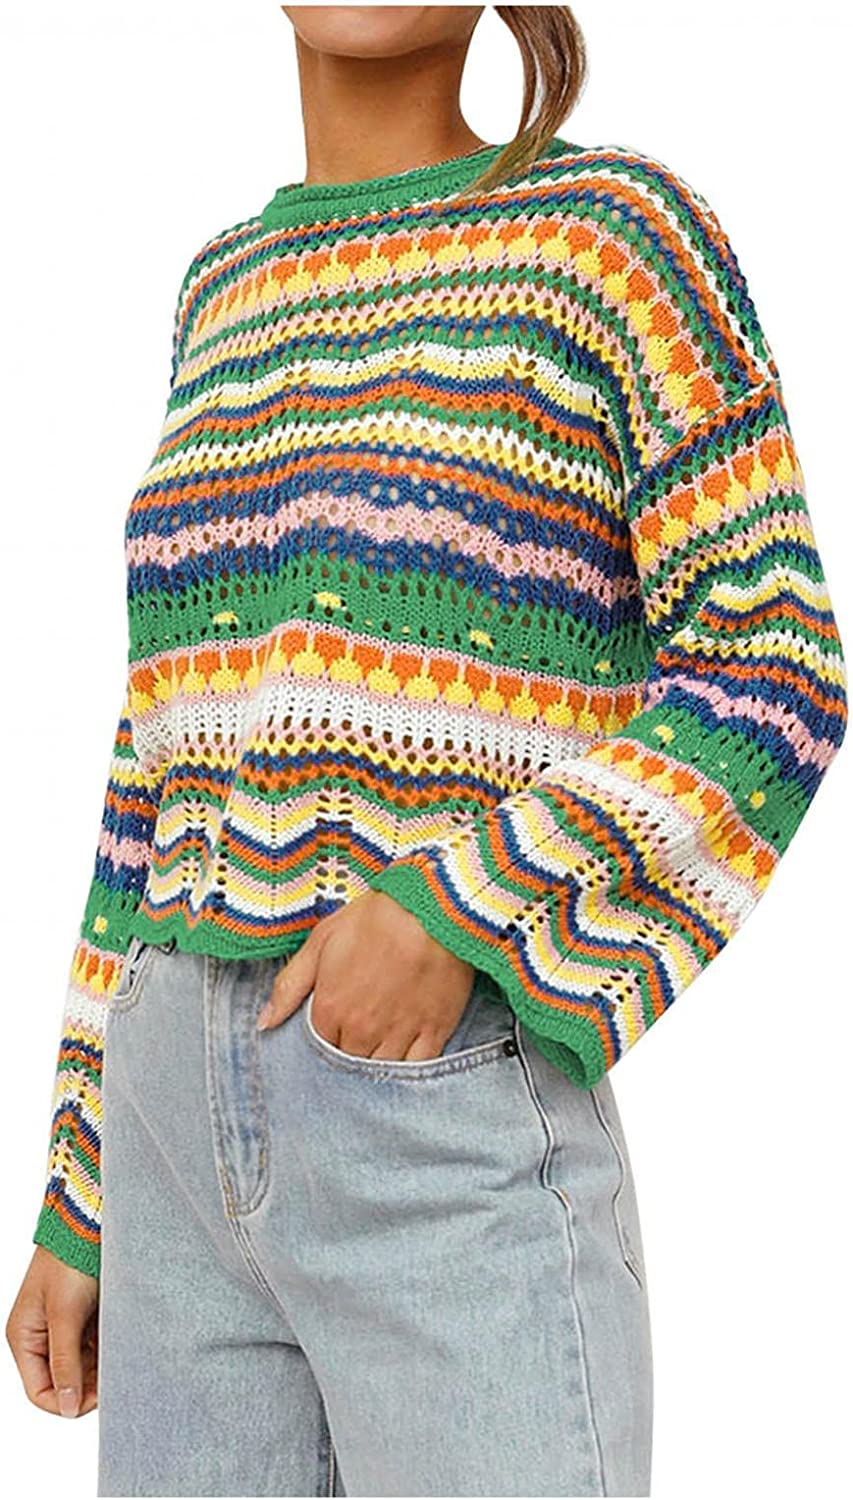 Misaky Women Sweater Rainbow Colorful Striped Sweaters Crochet Knit Long Sleeve Crop Top Loose Pullover Tops